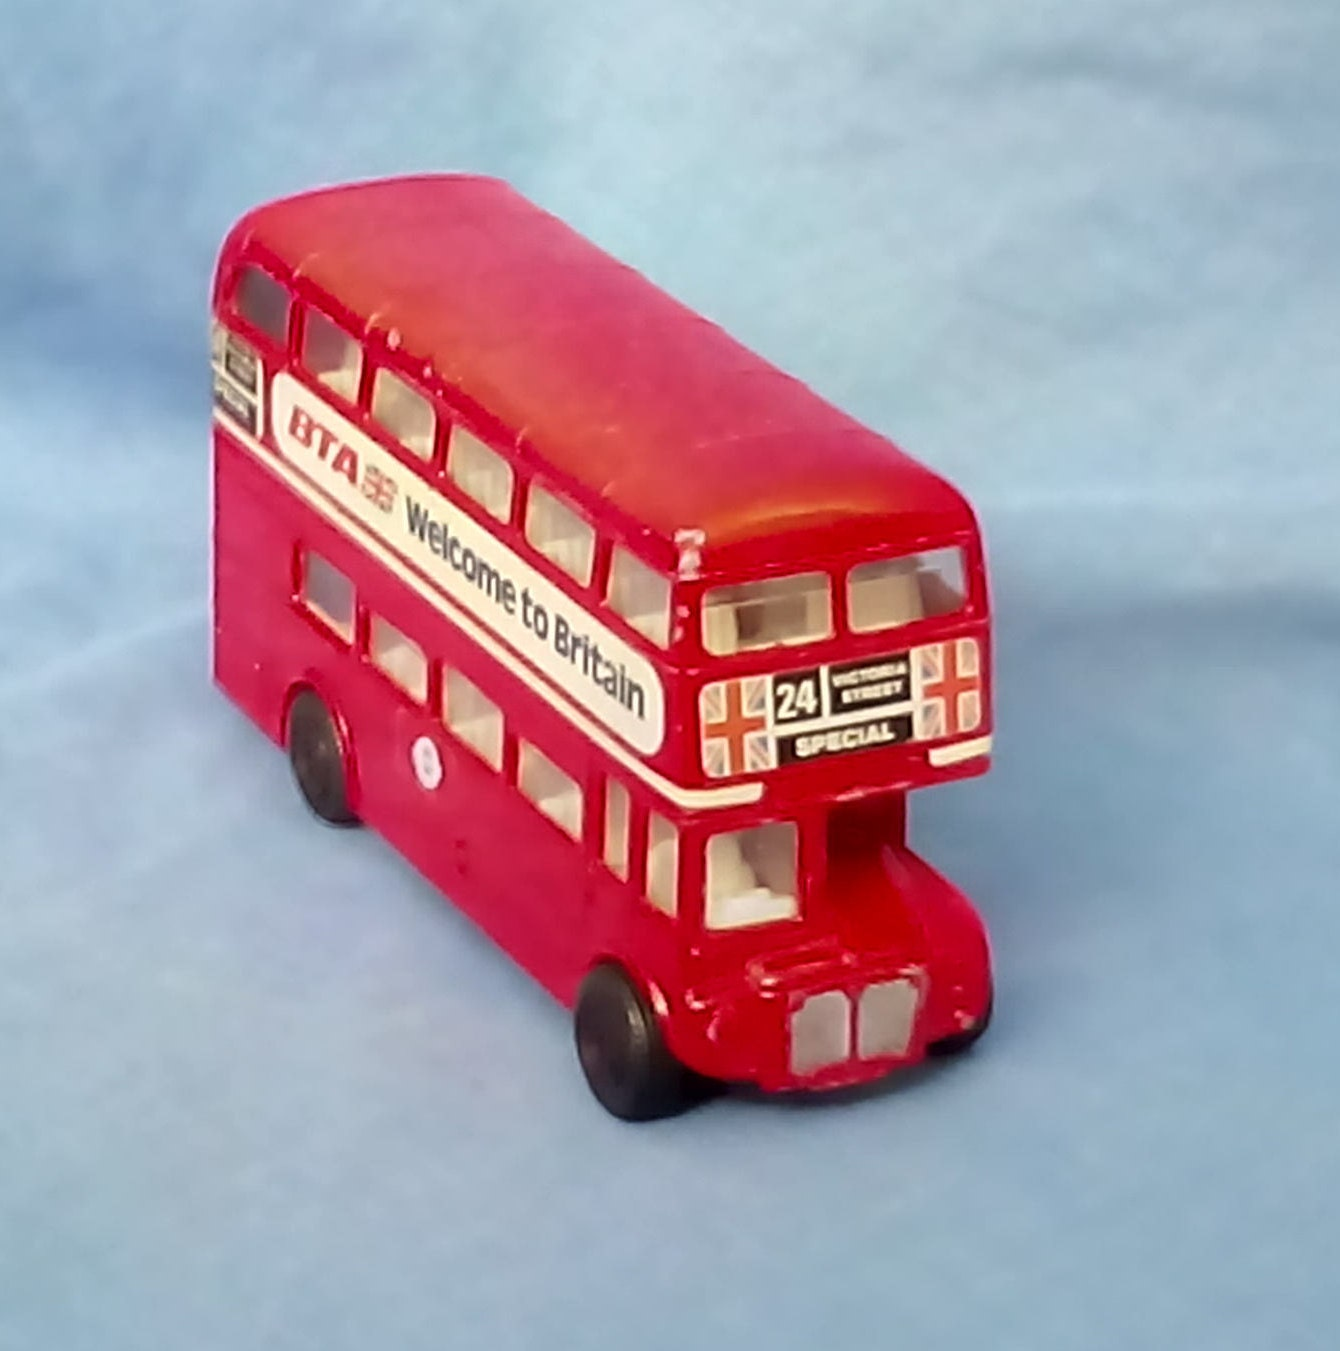 Vintage Corgi London Red Bus DieCast Model Routemaster No 24 Victoria Street Special Welcome to Britain